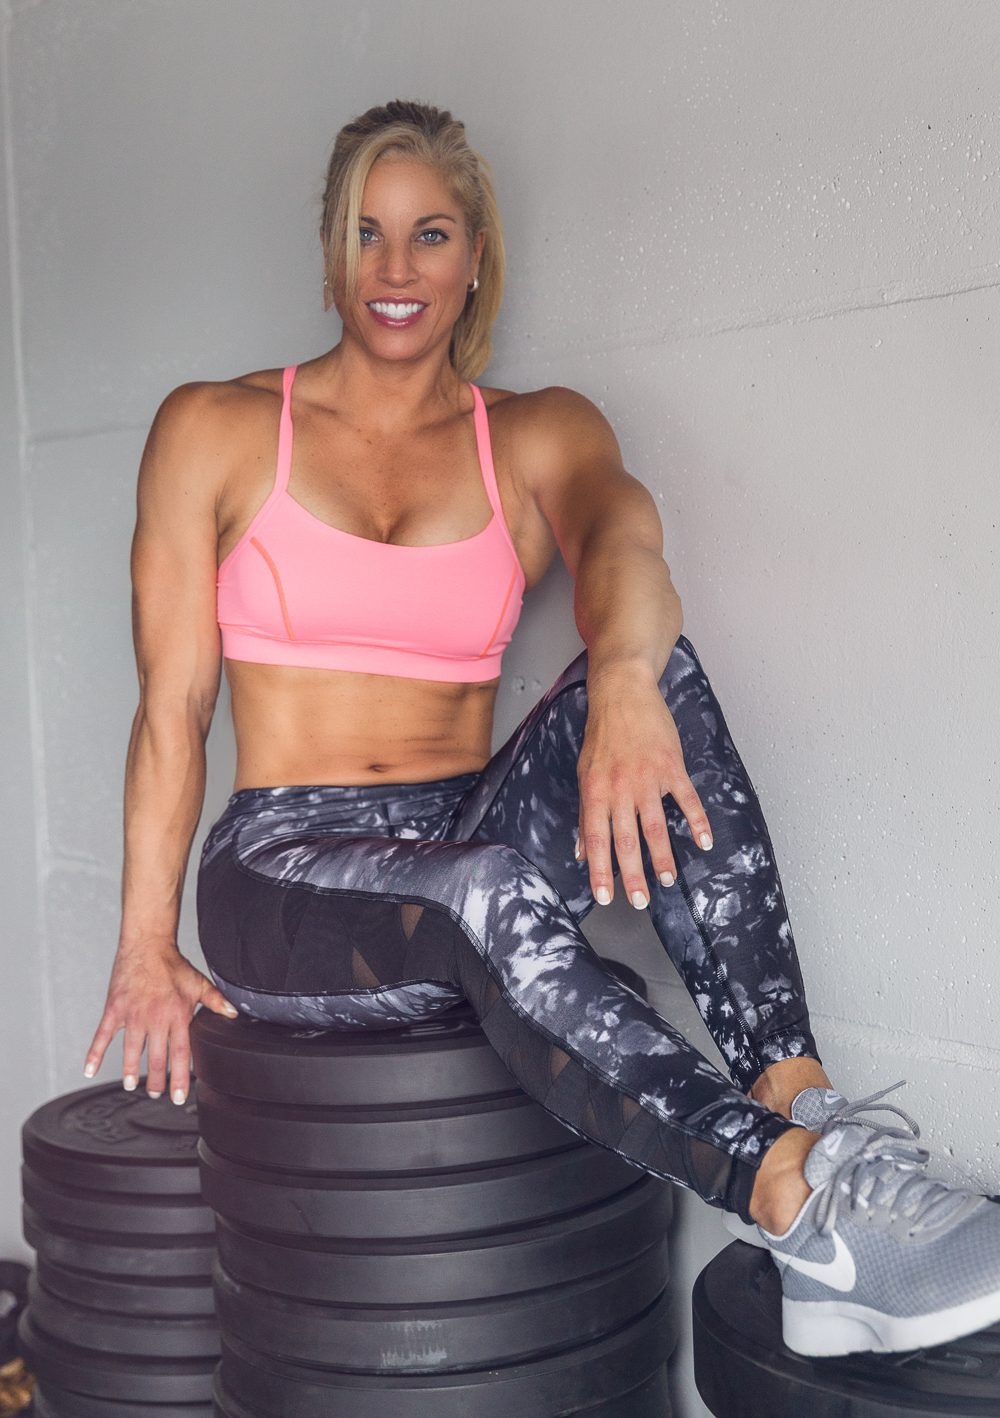 Personal Trainer Braintree, Massachusetts - Dana Logan